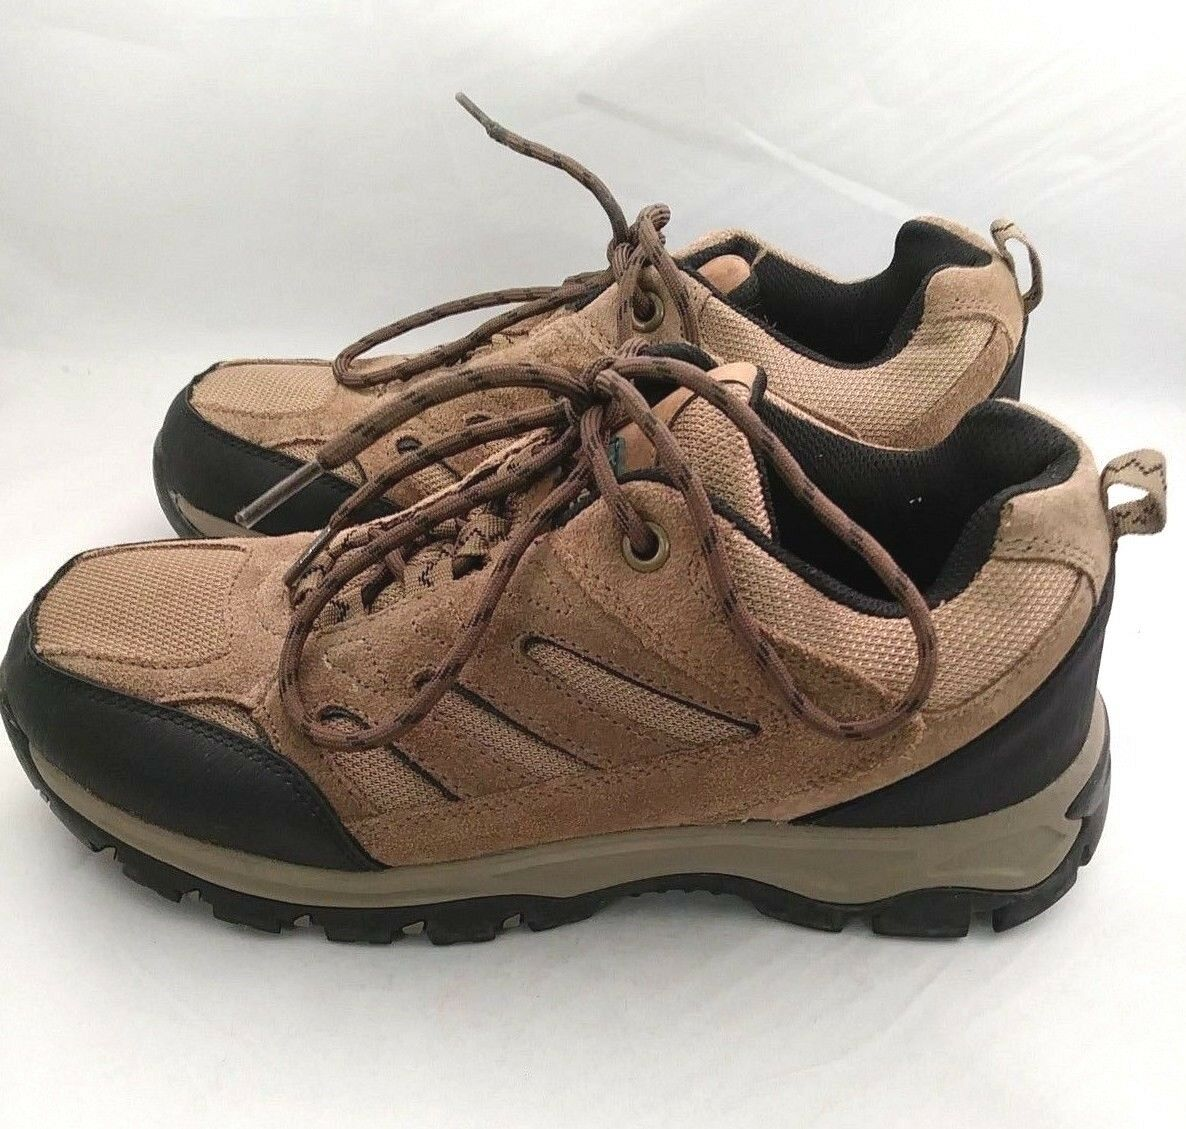 OUTDOOR  LIFE Clark Brown Suede Mesh Hiking Trail Walking shoes Men's Size 10  convenient